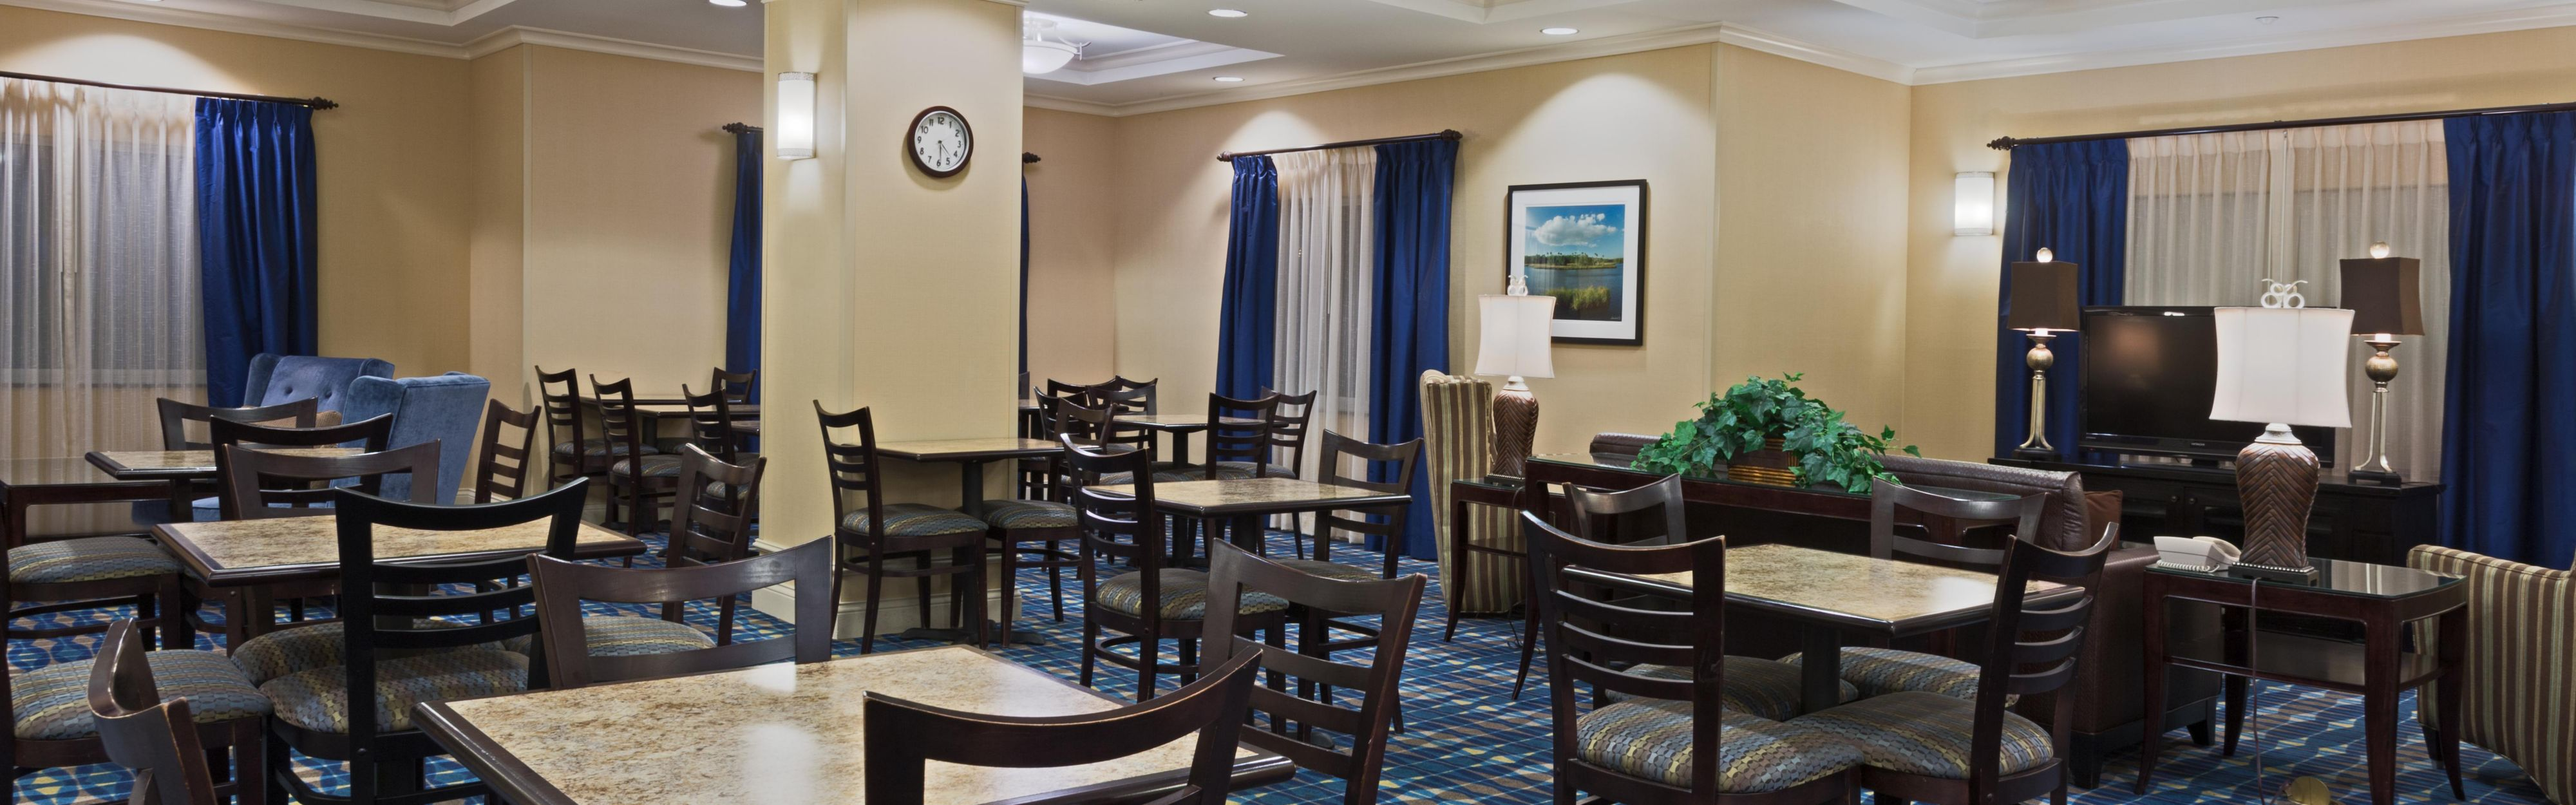 Take A Break In Our Spacious Great Room ...